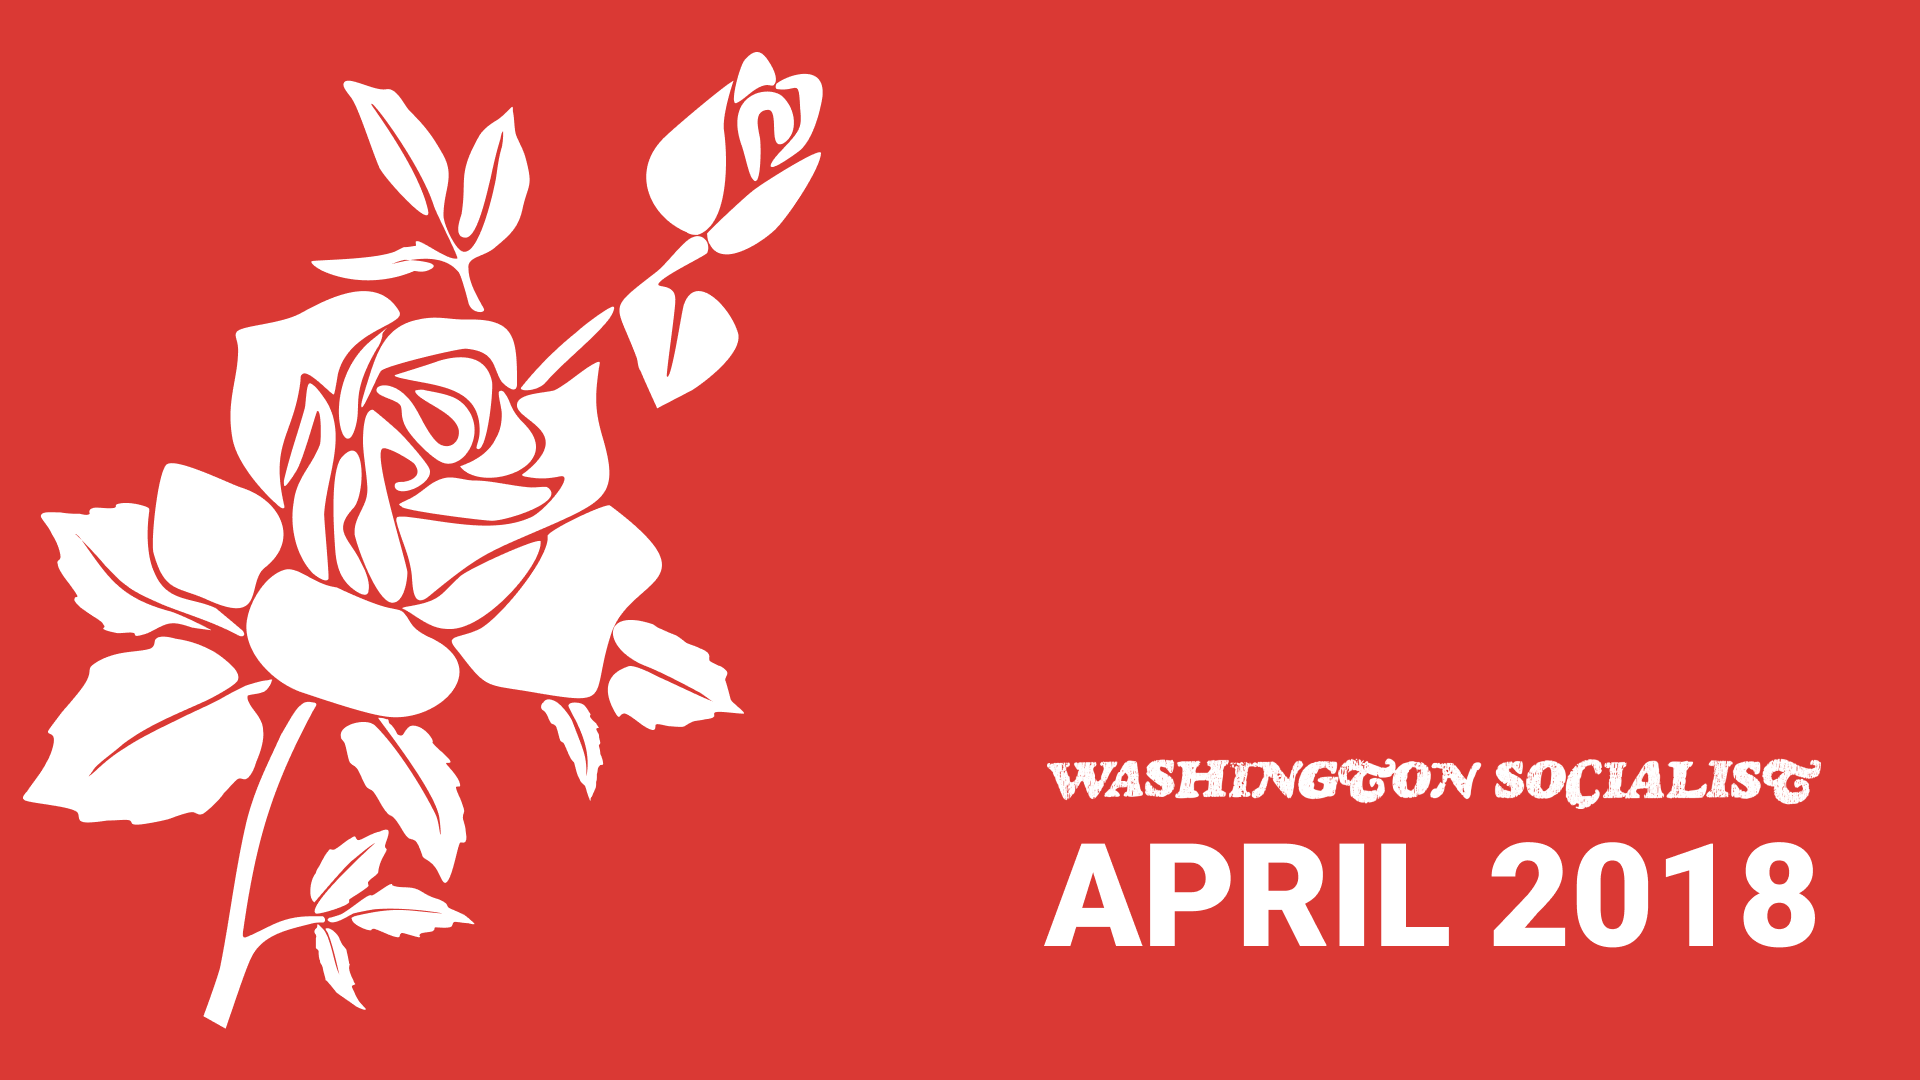 Washington Socialist Cover, April 2018